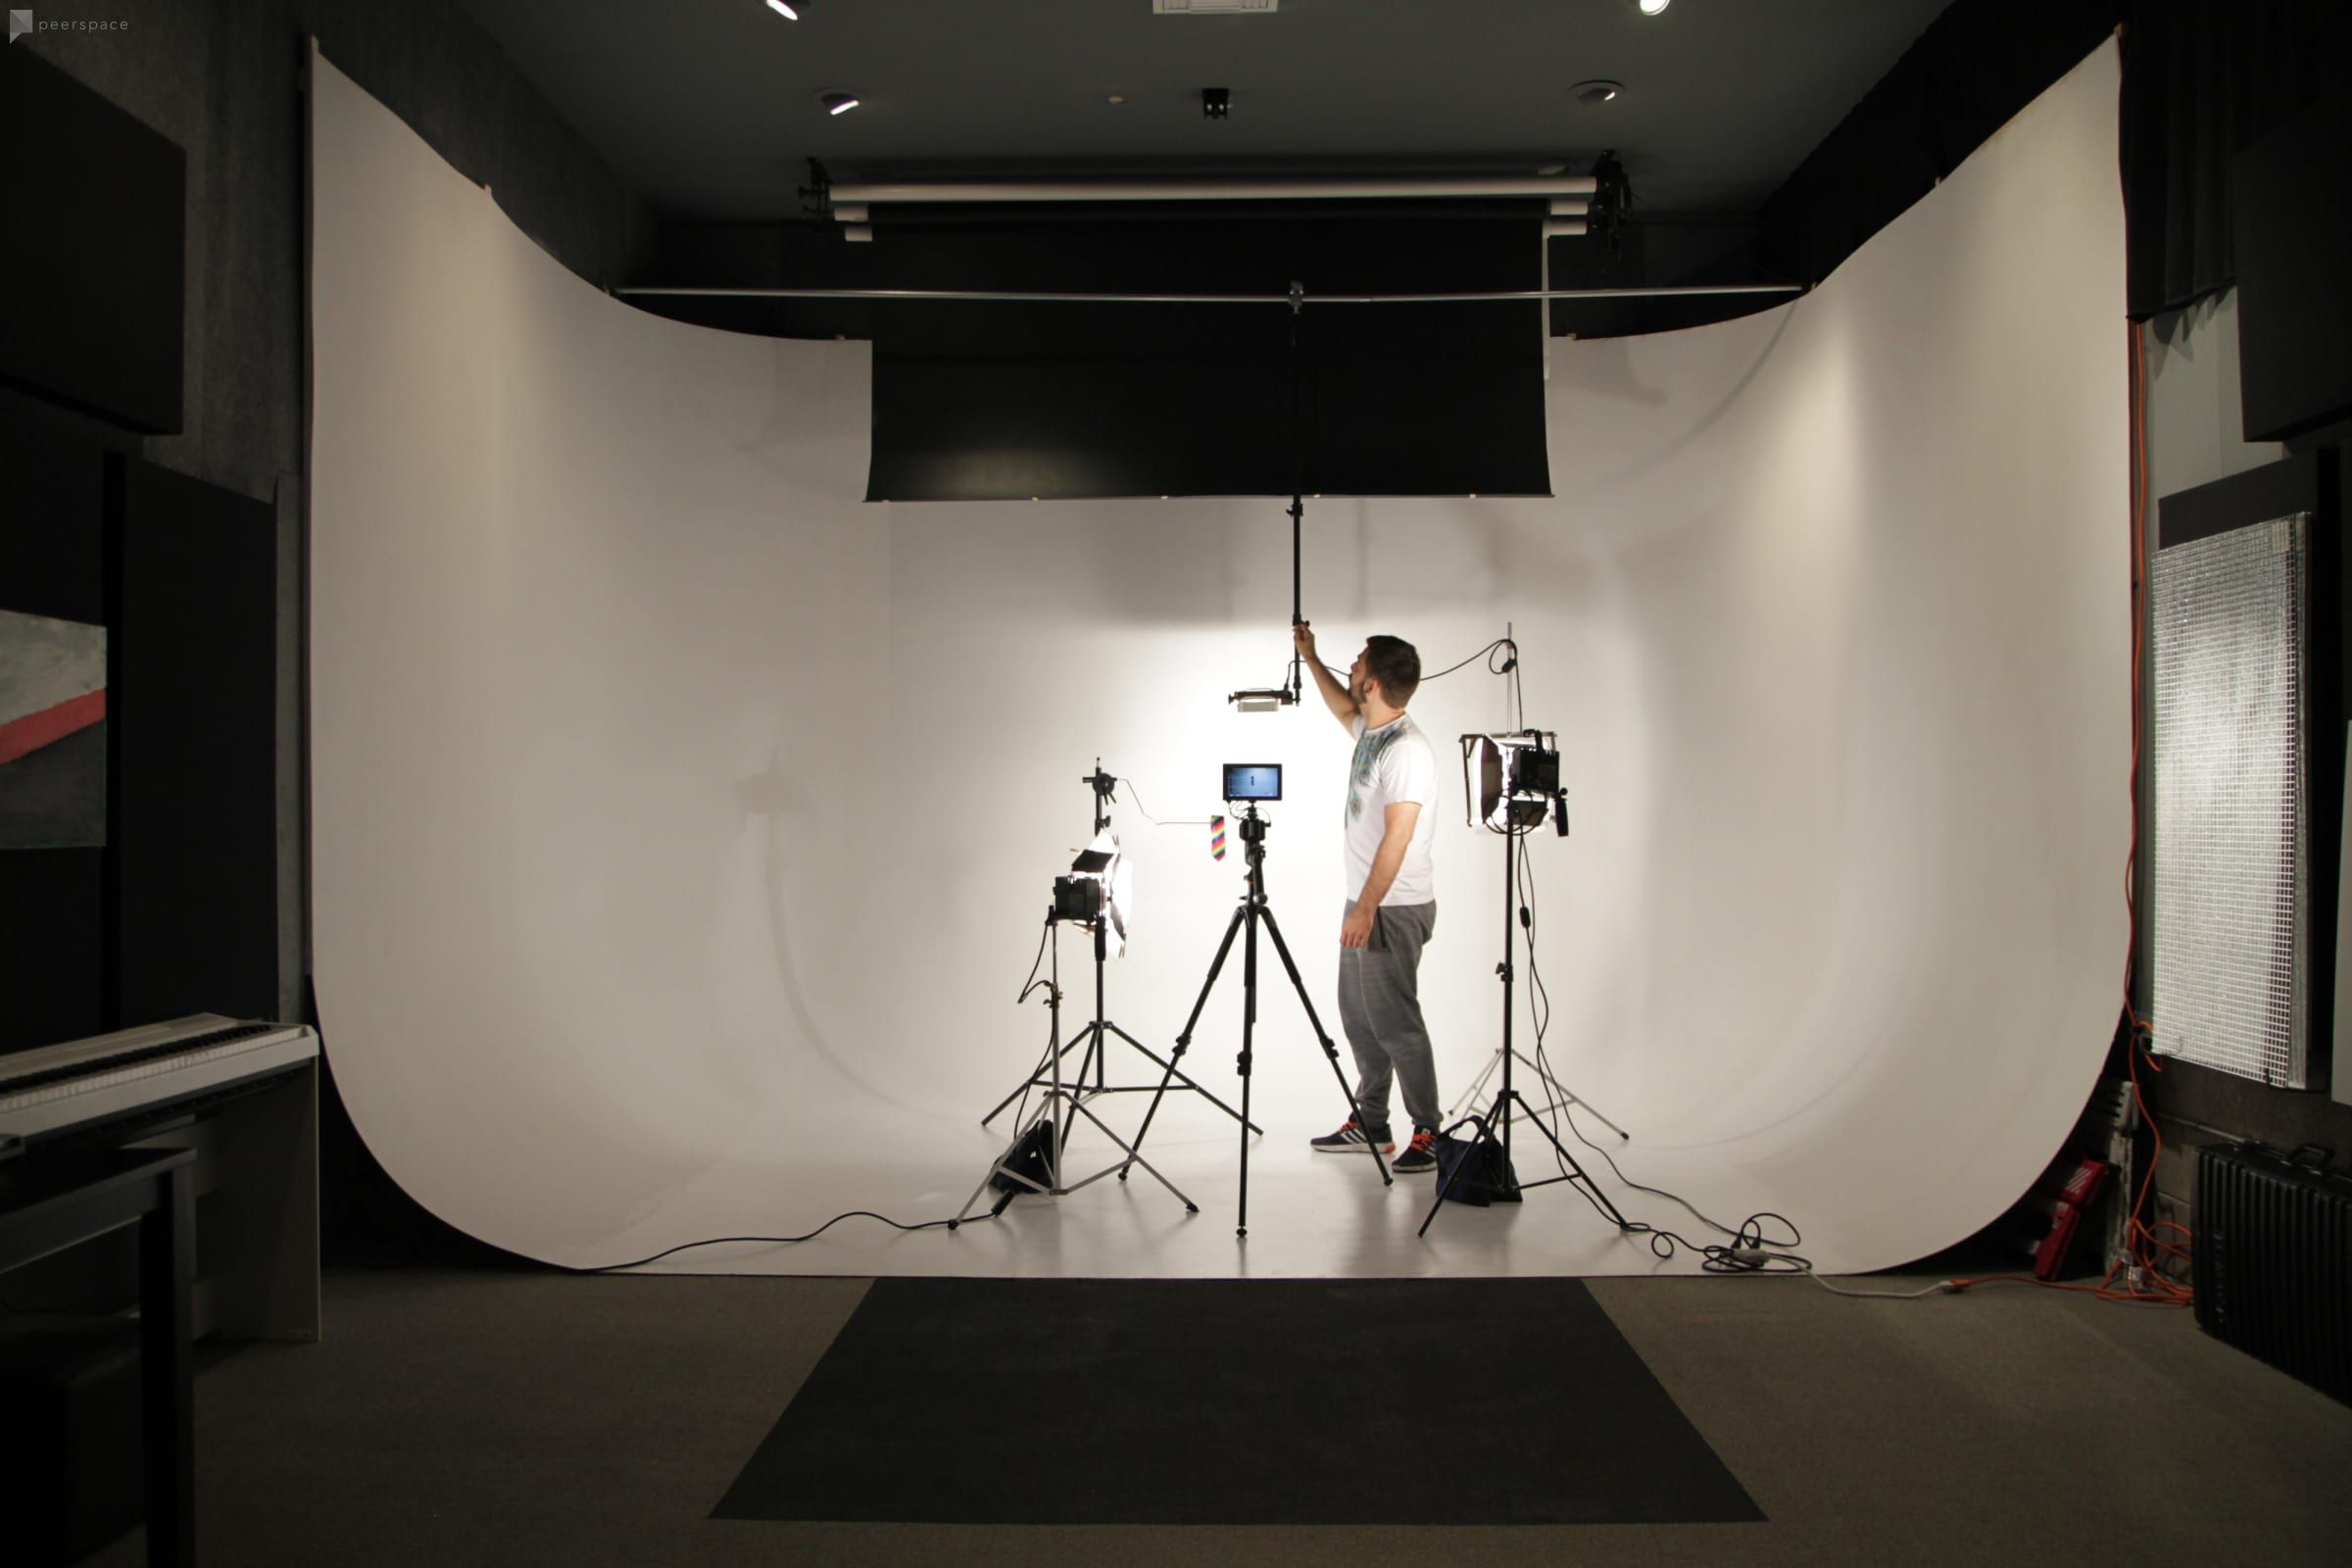 Studio With Cyclorama And Equipment For Photo Video